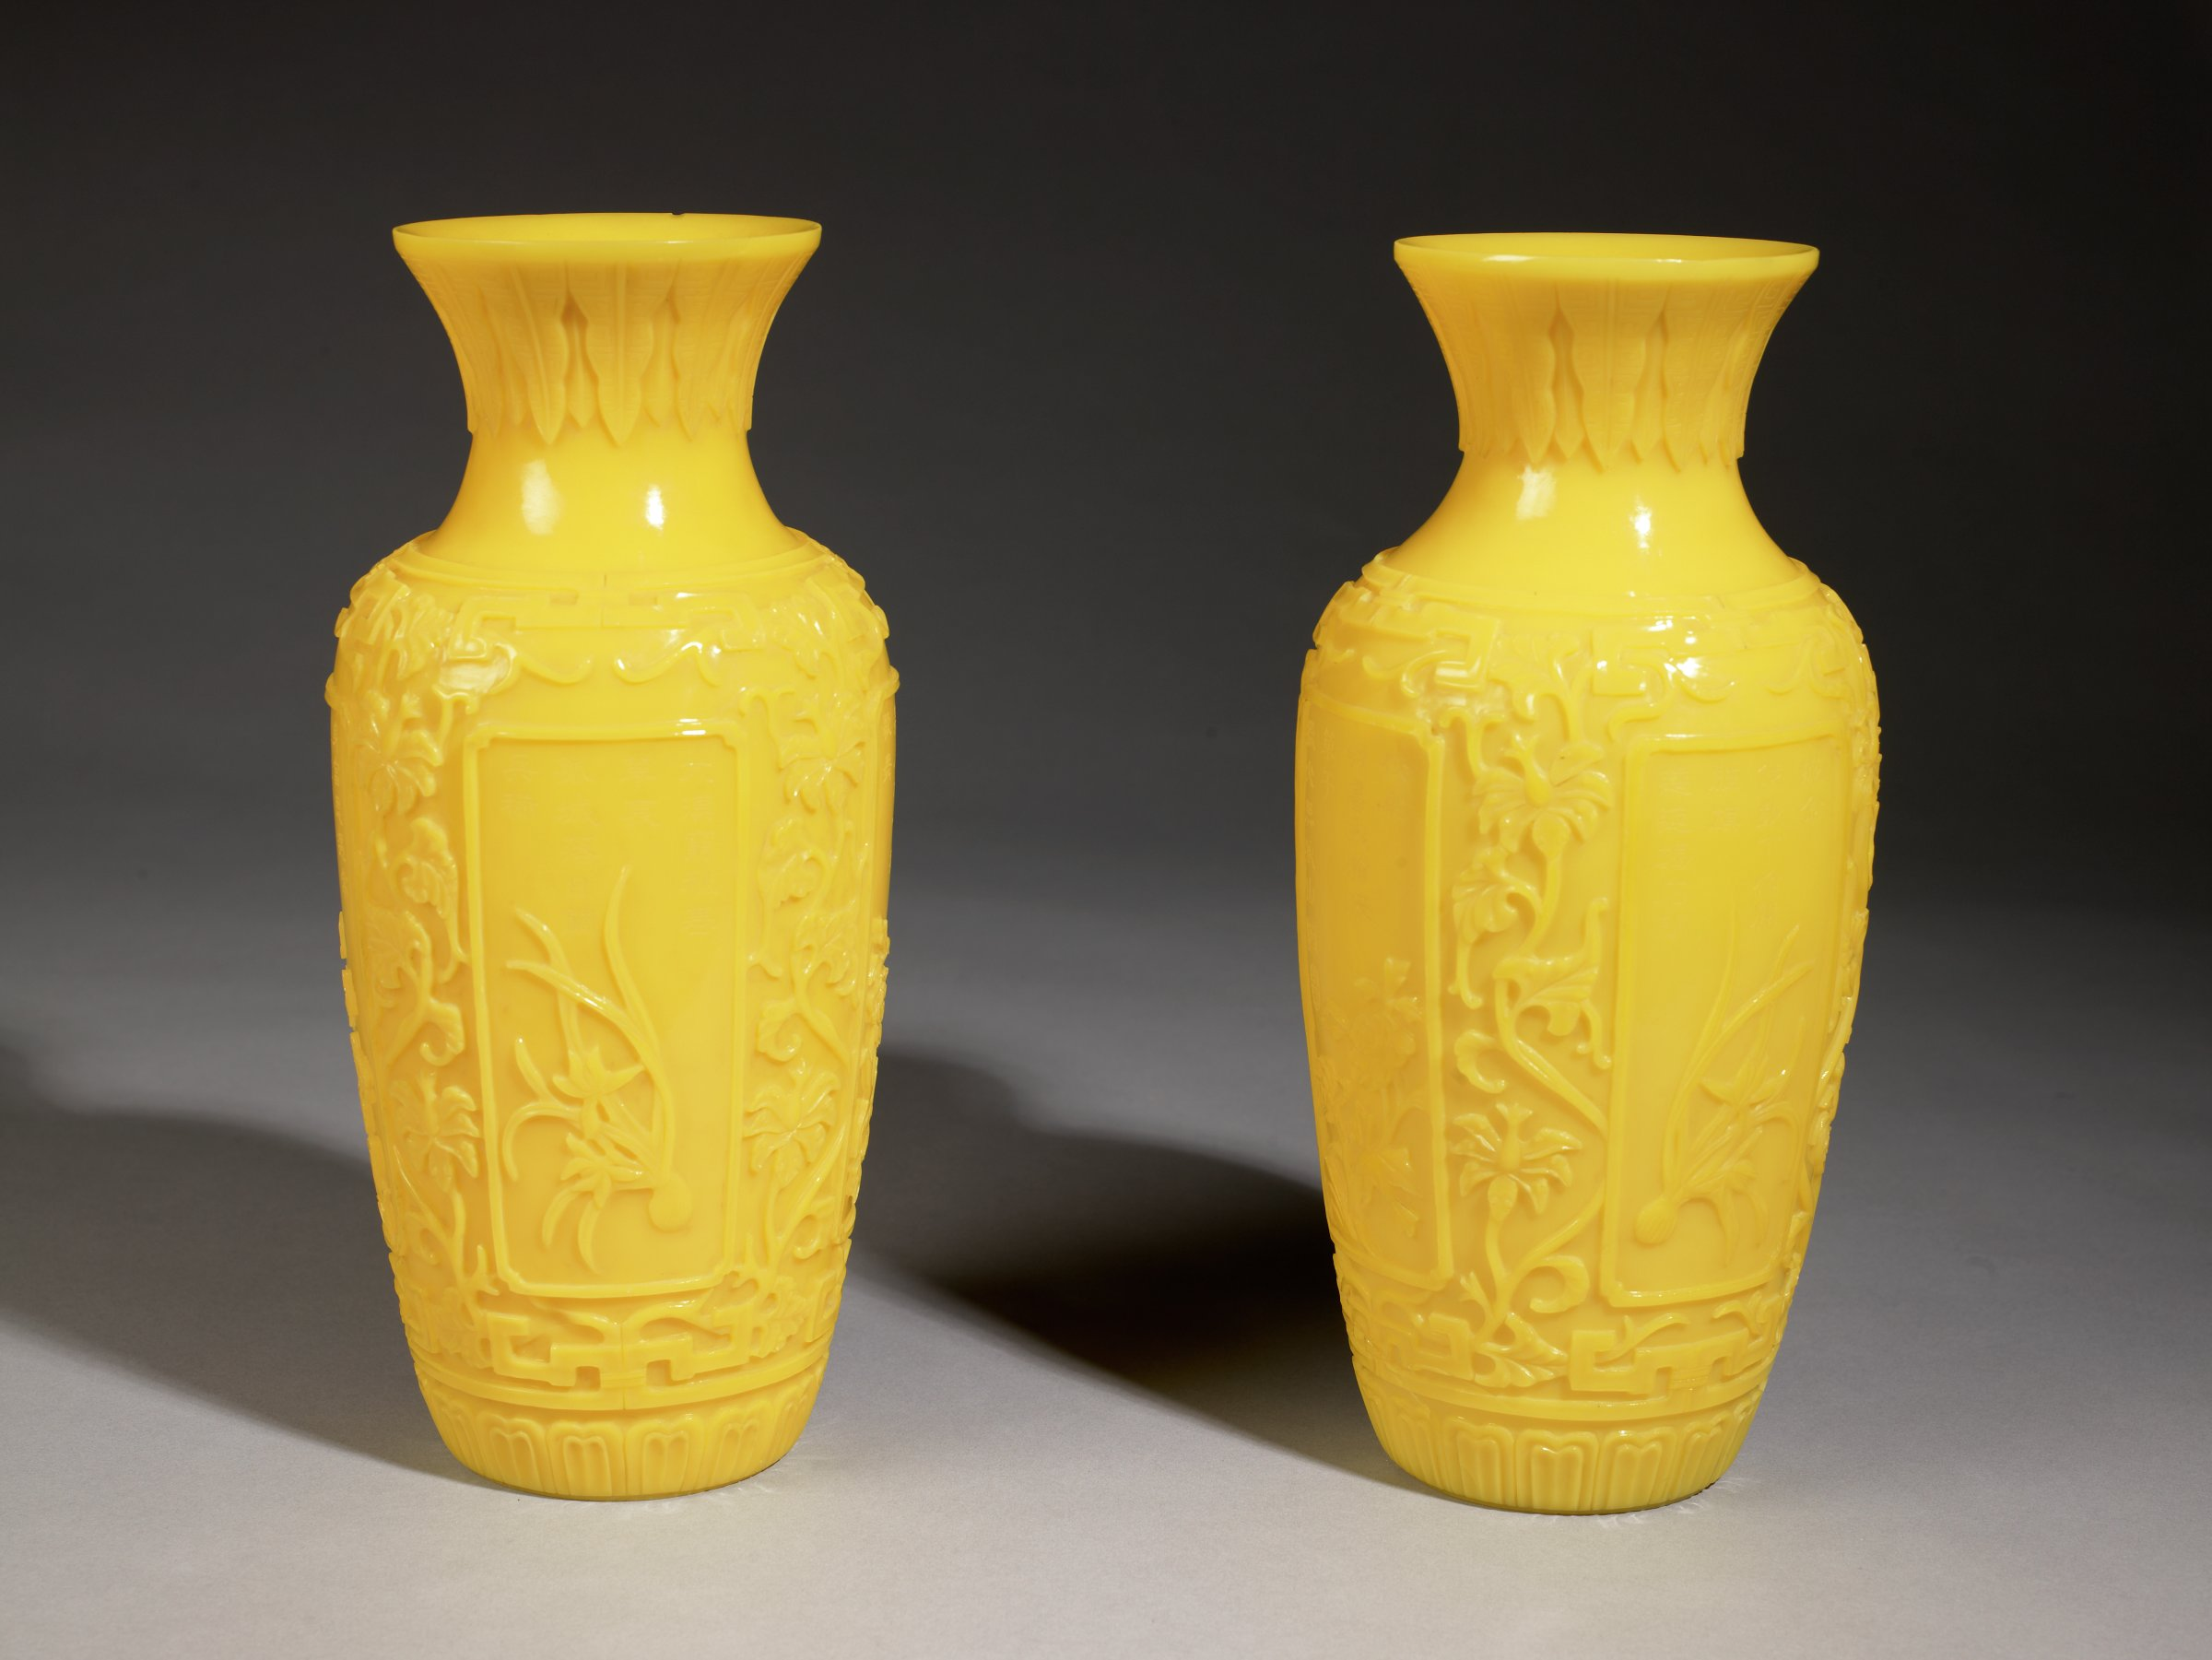 Yellow Peking glass vasesPair of Yellow Glass Vases with Banana Leaf, Daffodil and Orchid Motifs in geometric key with lotus-petal base